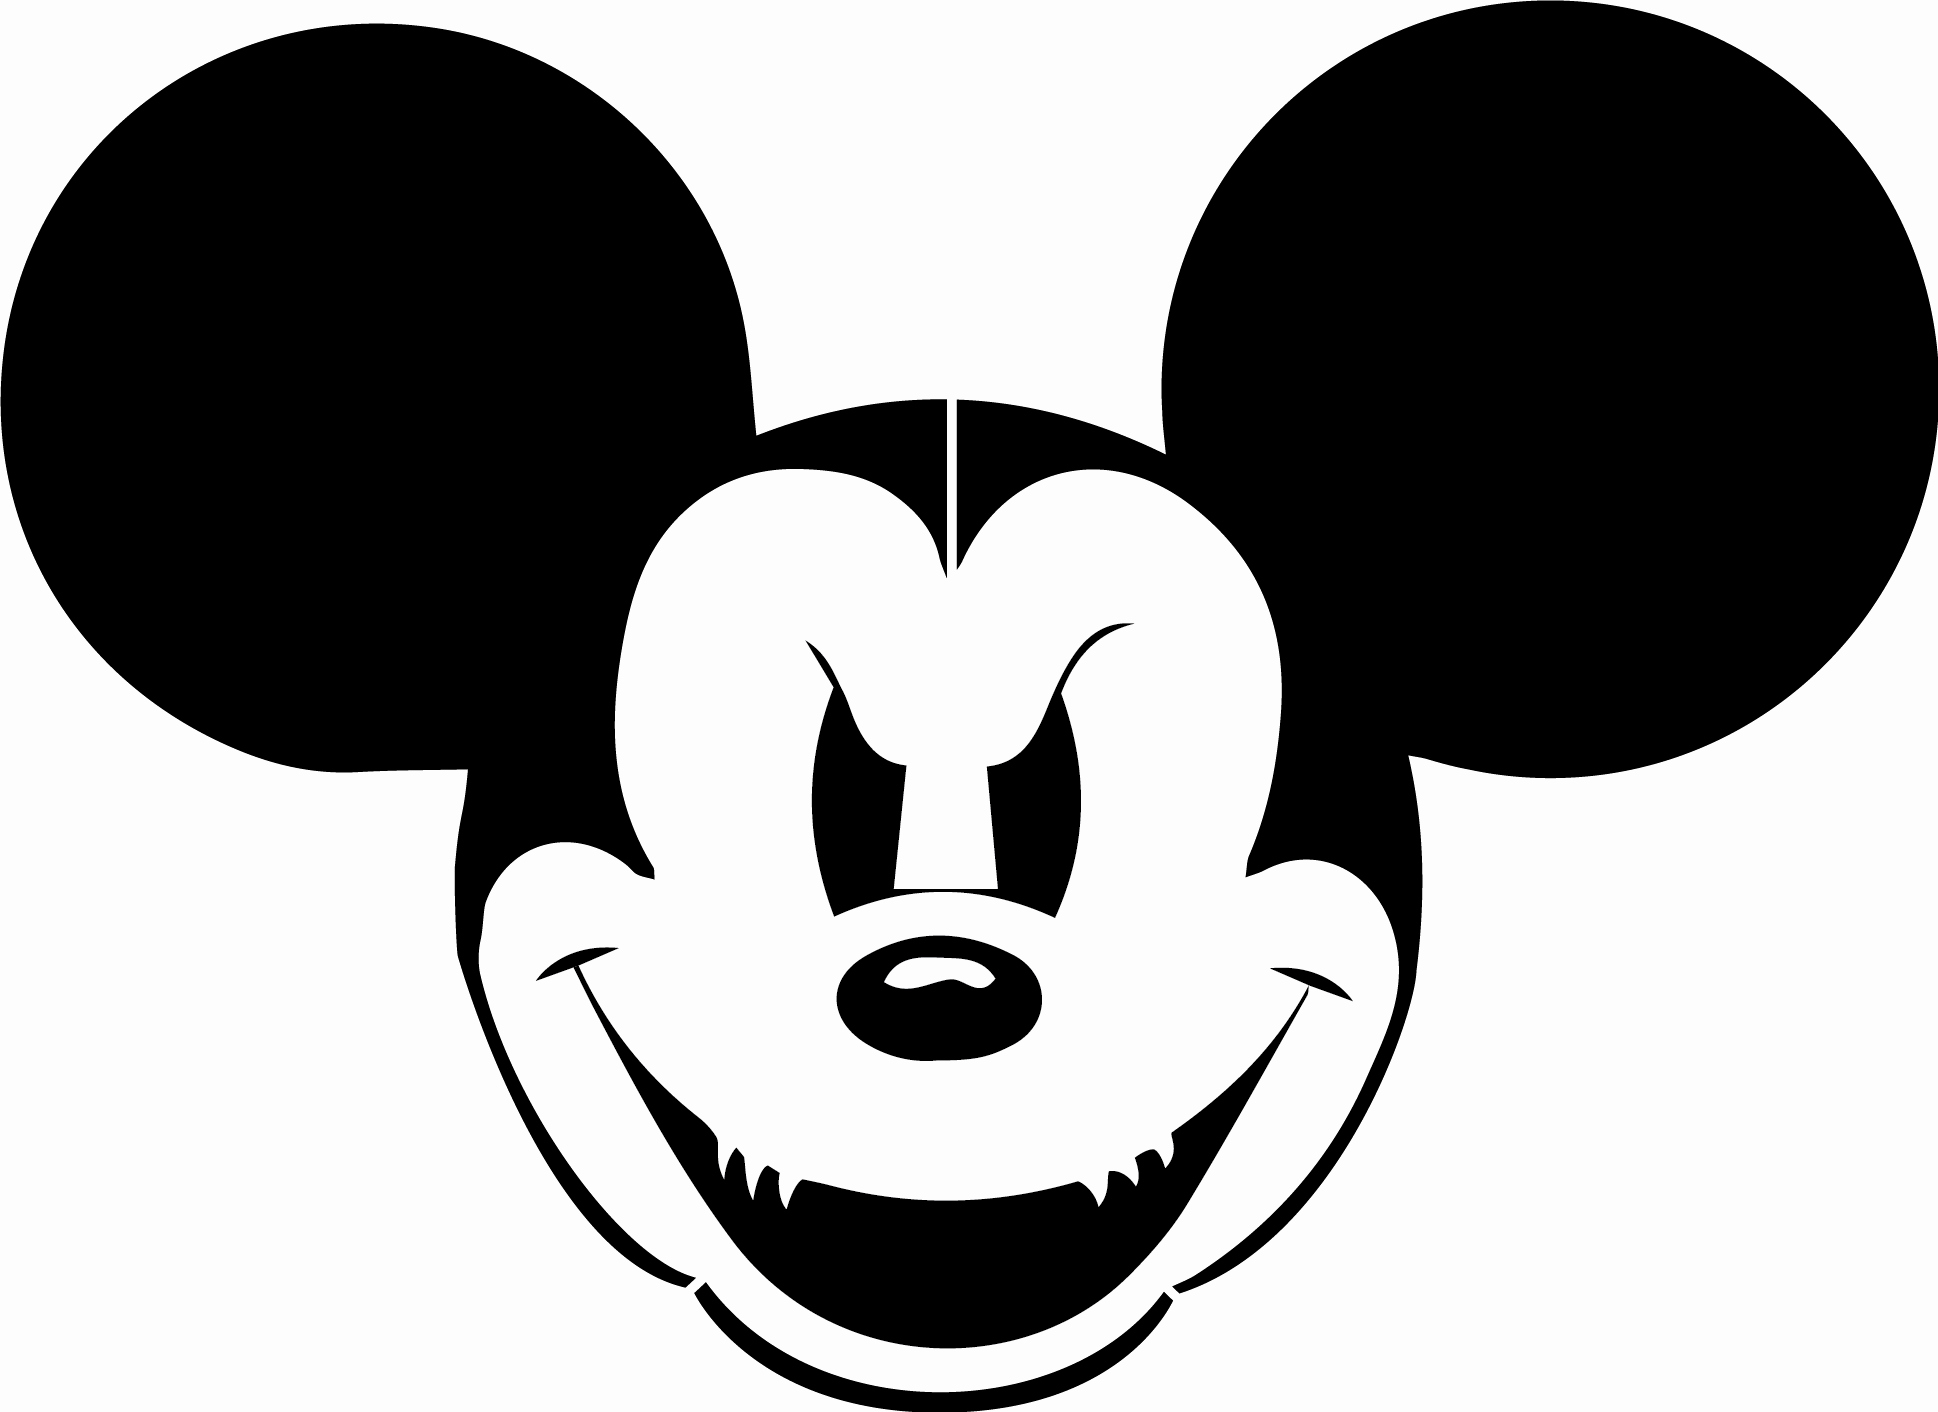 Mickey Mouse Head Stencil Luxury Evil Mickey Stencil Template Stencil Templates